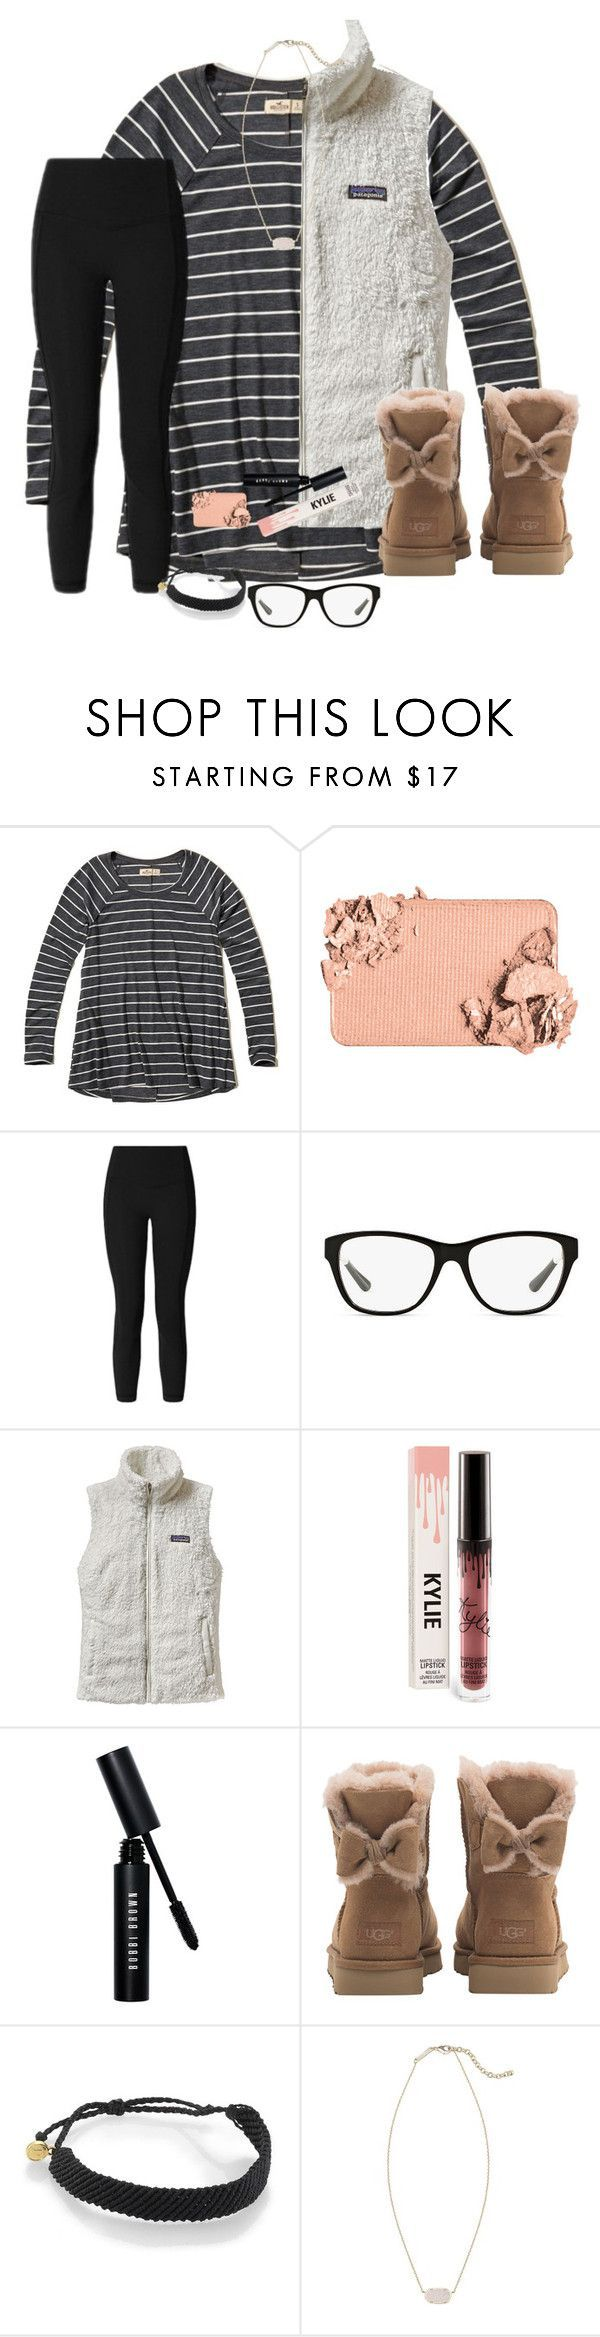 """""""Looking Cute Is A Competitive Sport"""" by bowbeauty01 ❤ liked on Polyvore featuring Hollister Co., Too Faced Cosmetics, lululemon, Ralph Lauren, Patagonia, Bobbi Brown Cosmetics, UGG, Pura Vida, Kendra Scott and bowbeautiful"""